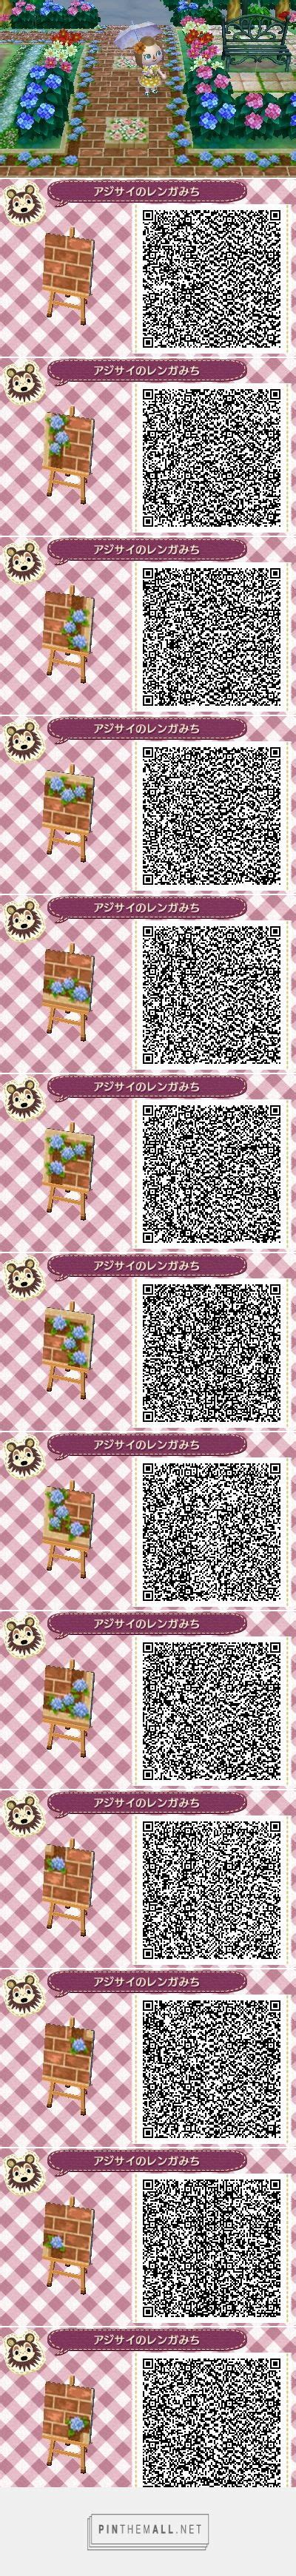 acnl hydrangea start 125 best images about animal crossing on pinterest